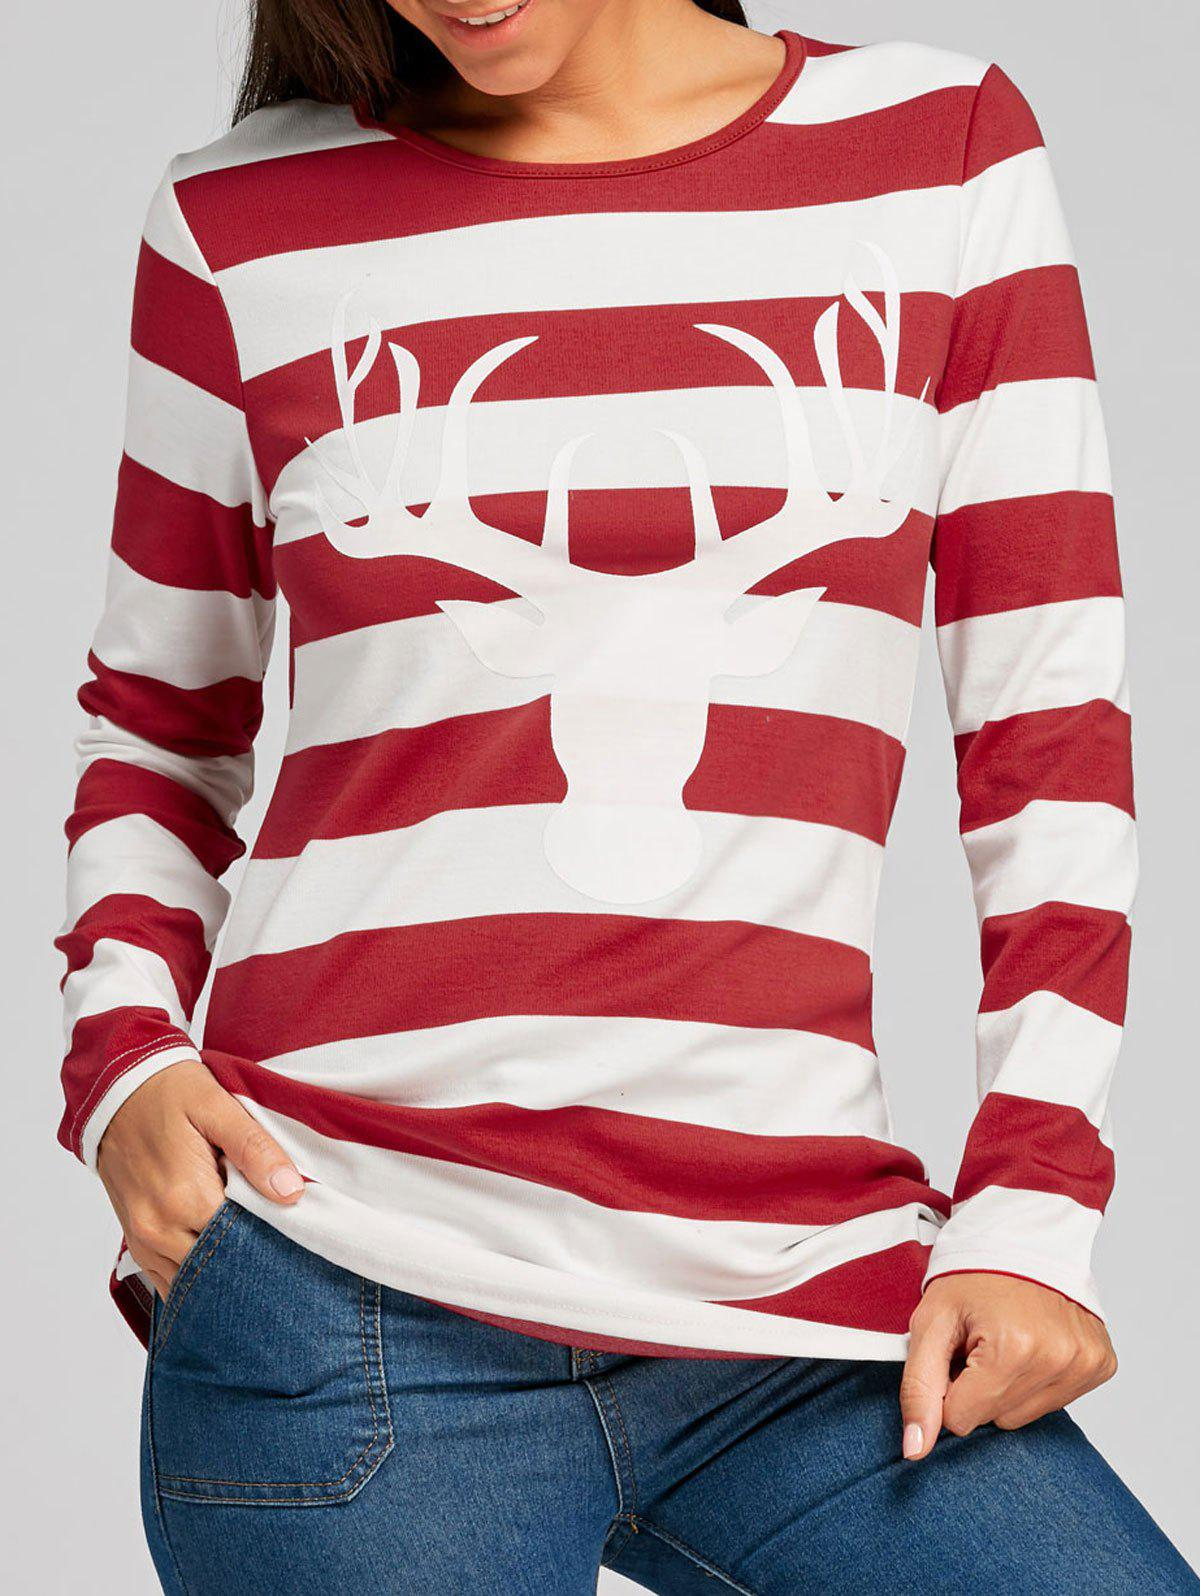 Christmas Long Sleeve Stripe Tunic T-shirtWOMEN<br><br>Size: S; Color: RED; Material: Polyester,Spandex; Shirt Length: Long; Sleeve Length: Full; Collar: Round Neck; Style: Fashion; Pattern Type: Print,Striped; Season: Fall,Spring; Weight: 0.4000kg; Package Contents: 1 x T-shirt;